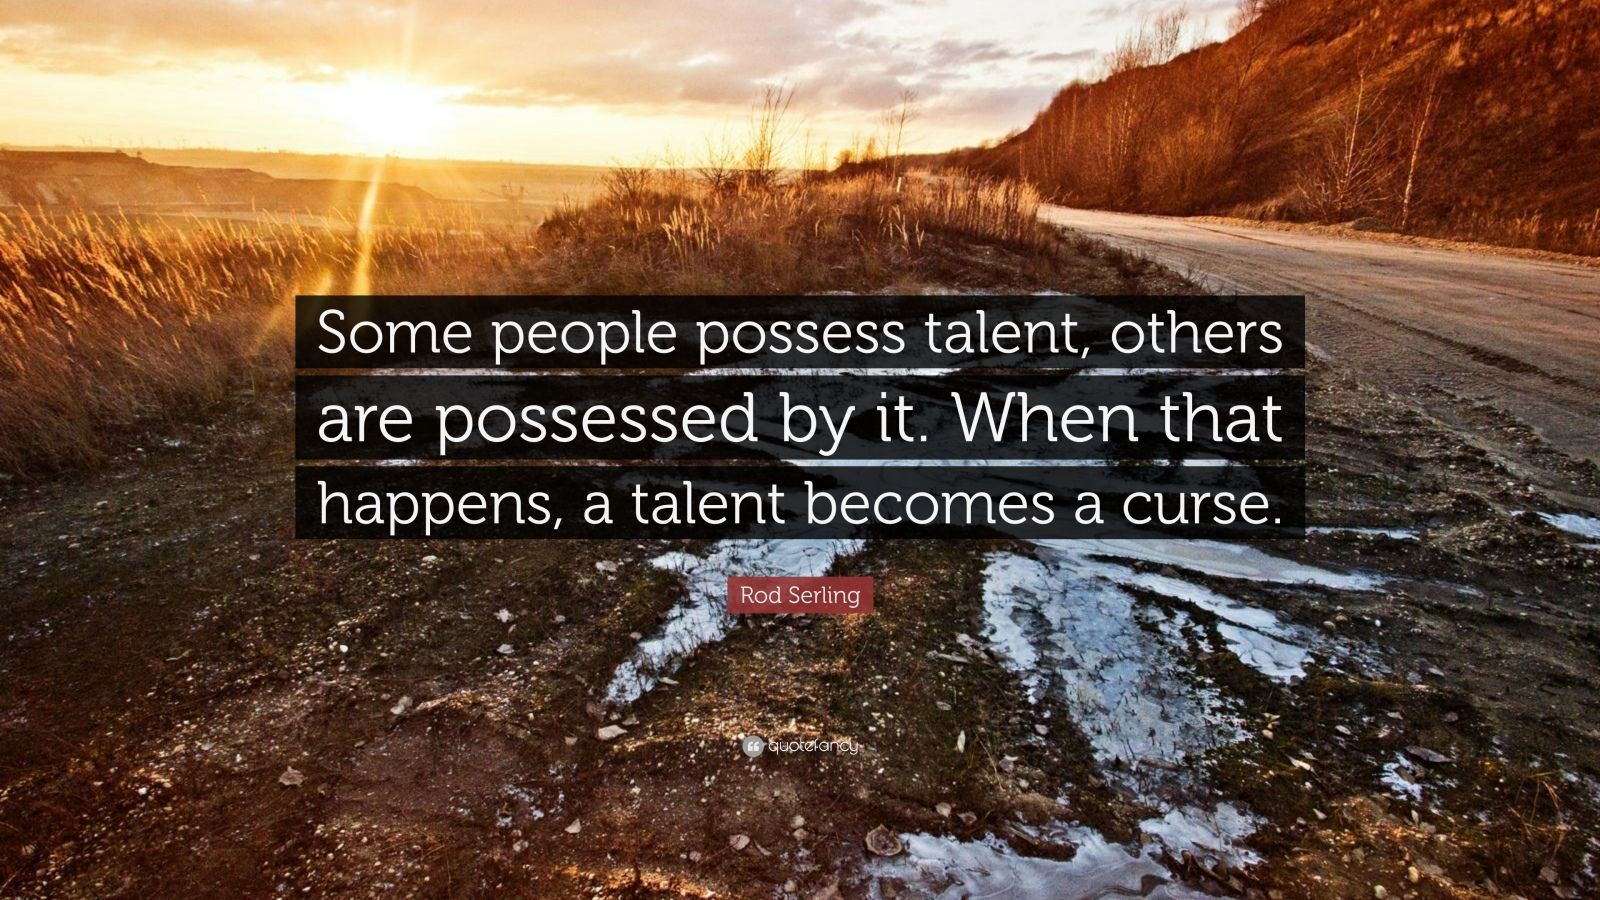 """Rod Serling Quote: """"Some people possess talent, others are possessed by it. When that happens, a talent becomes a curse."""""""